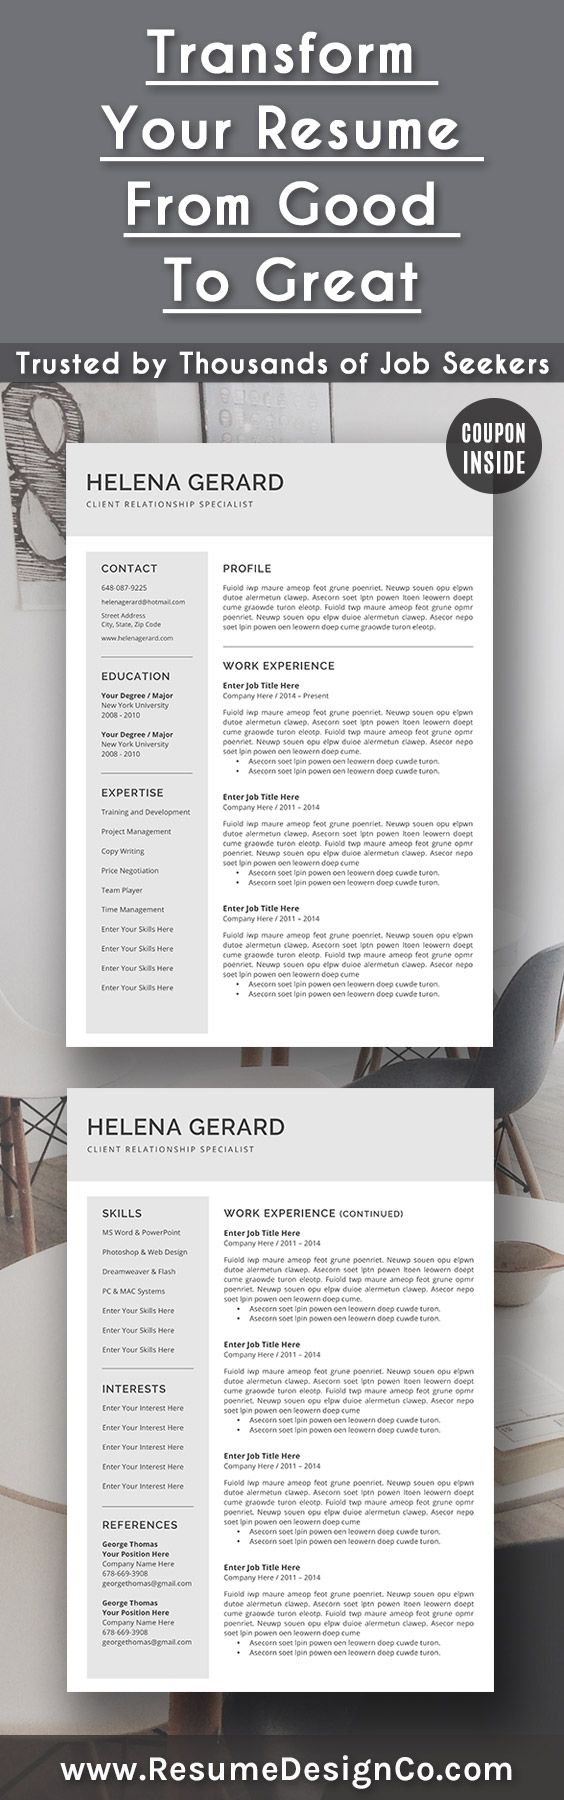 34 best Resume Templates images on Pinterest | Curriculum, Cv resume ...